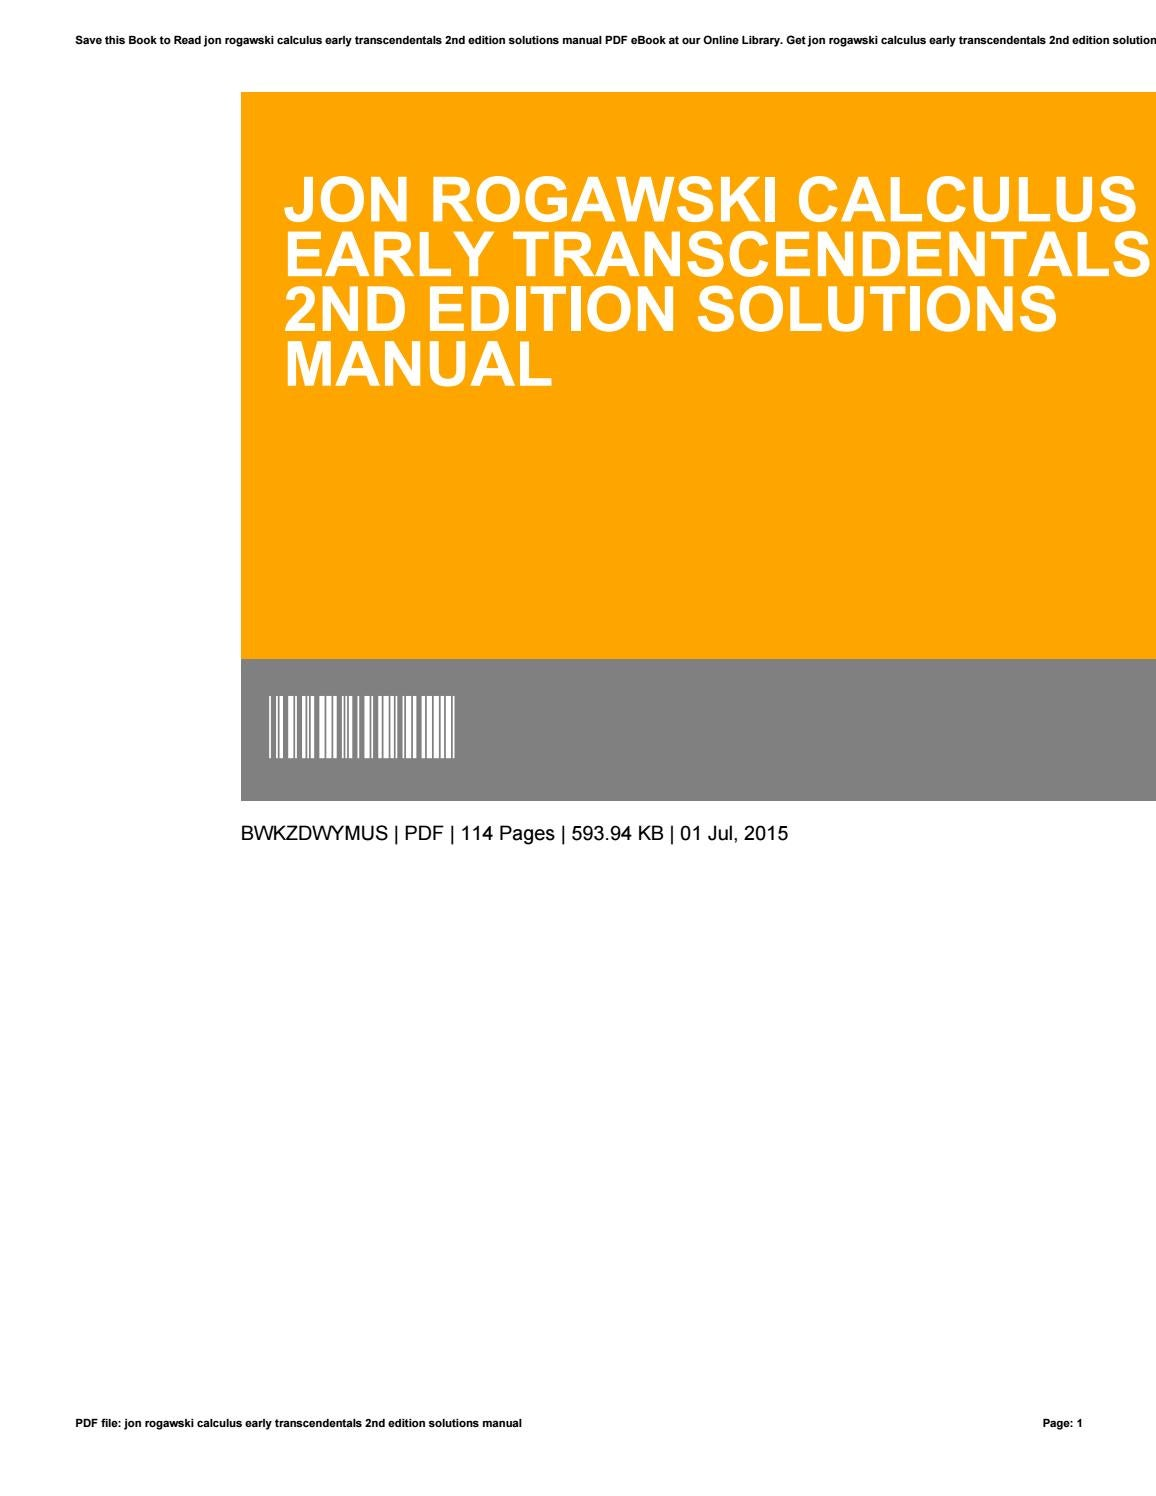 Jon rogawski calculus early transcendentals 2nd edition solutions manual by  LauraWilliams2237 - issuu